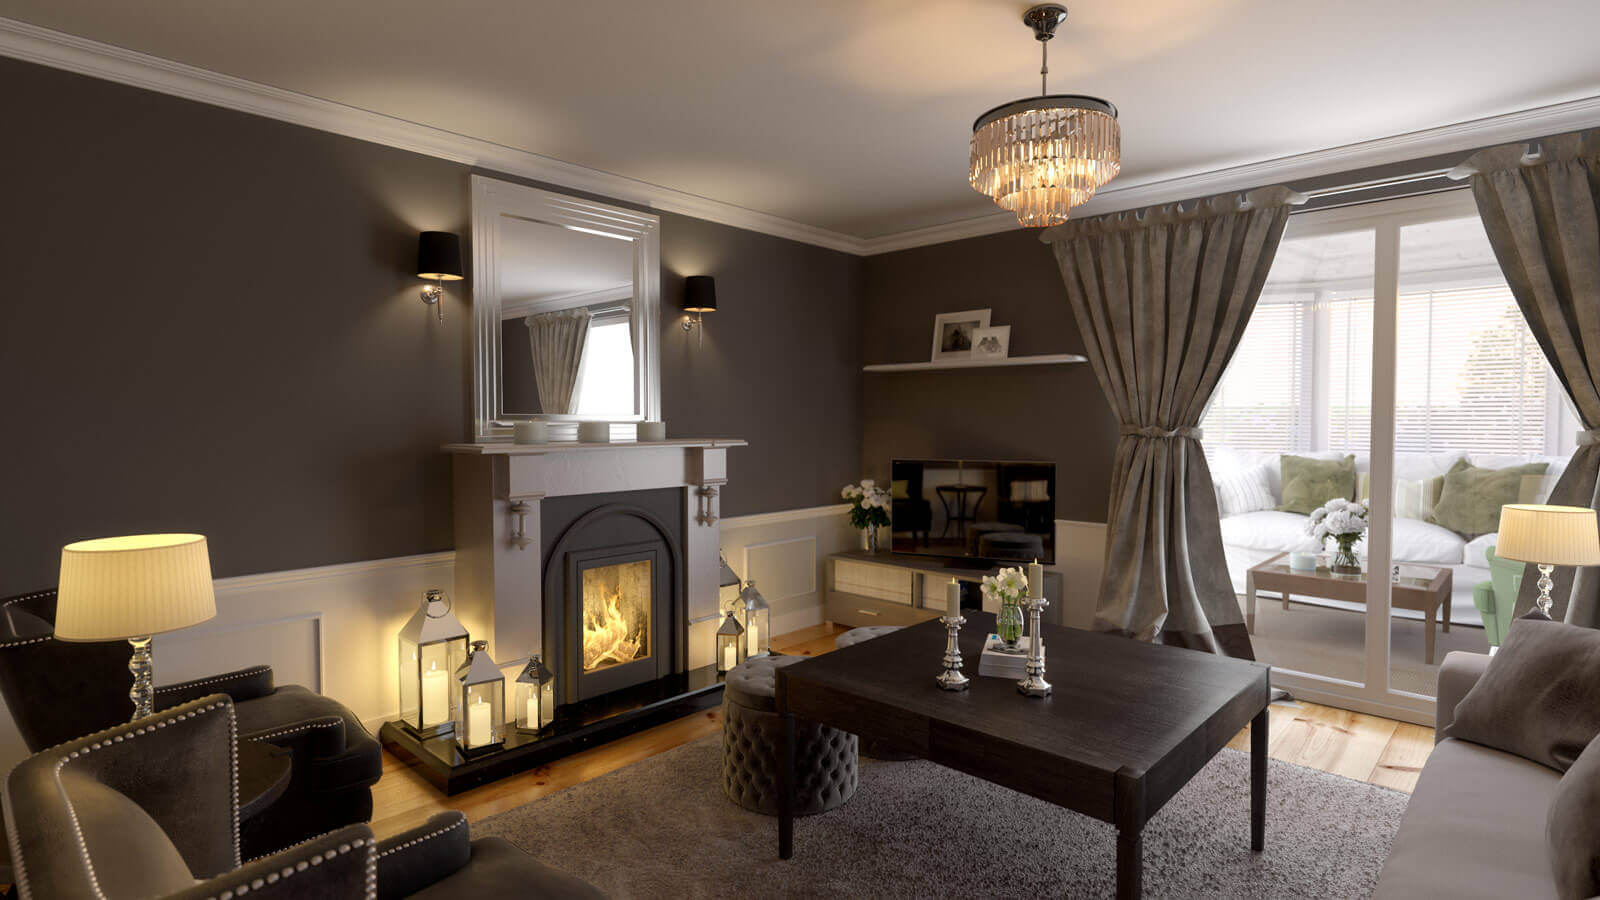 Living Room With Chimney Interior Rendering Aunar 3d